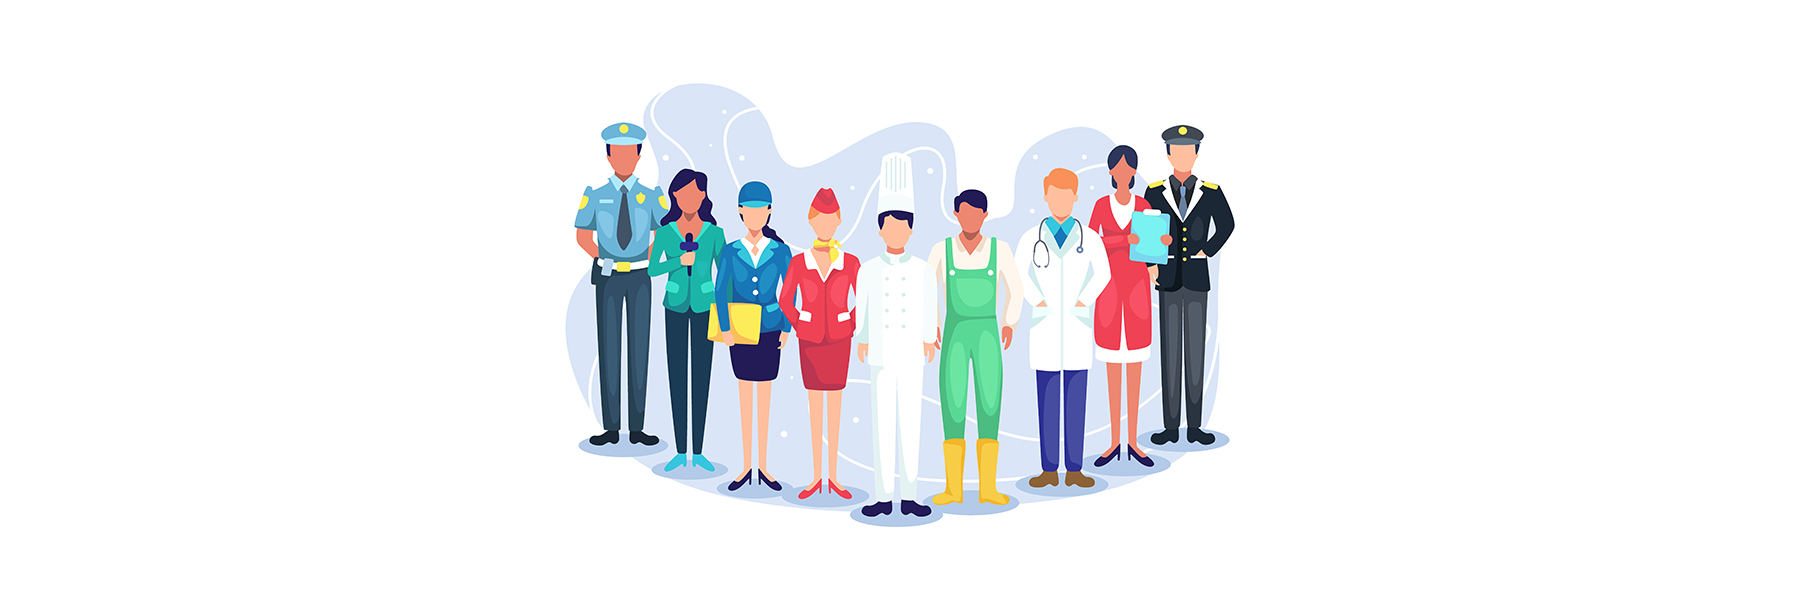 An illustration of a group of 9 people standing in a semi circle, they're all in different professions, like a cop, reporter, chef, doctor and more.